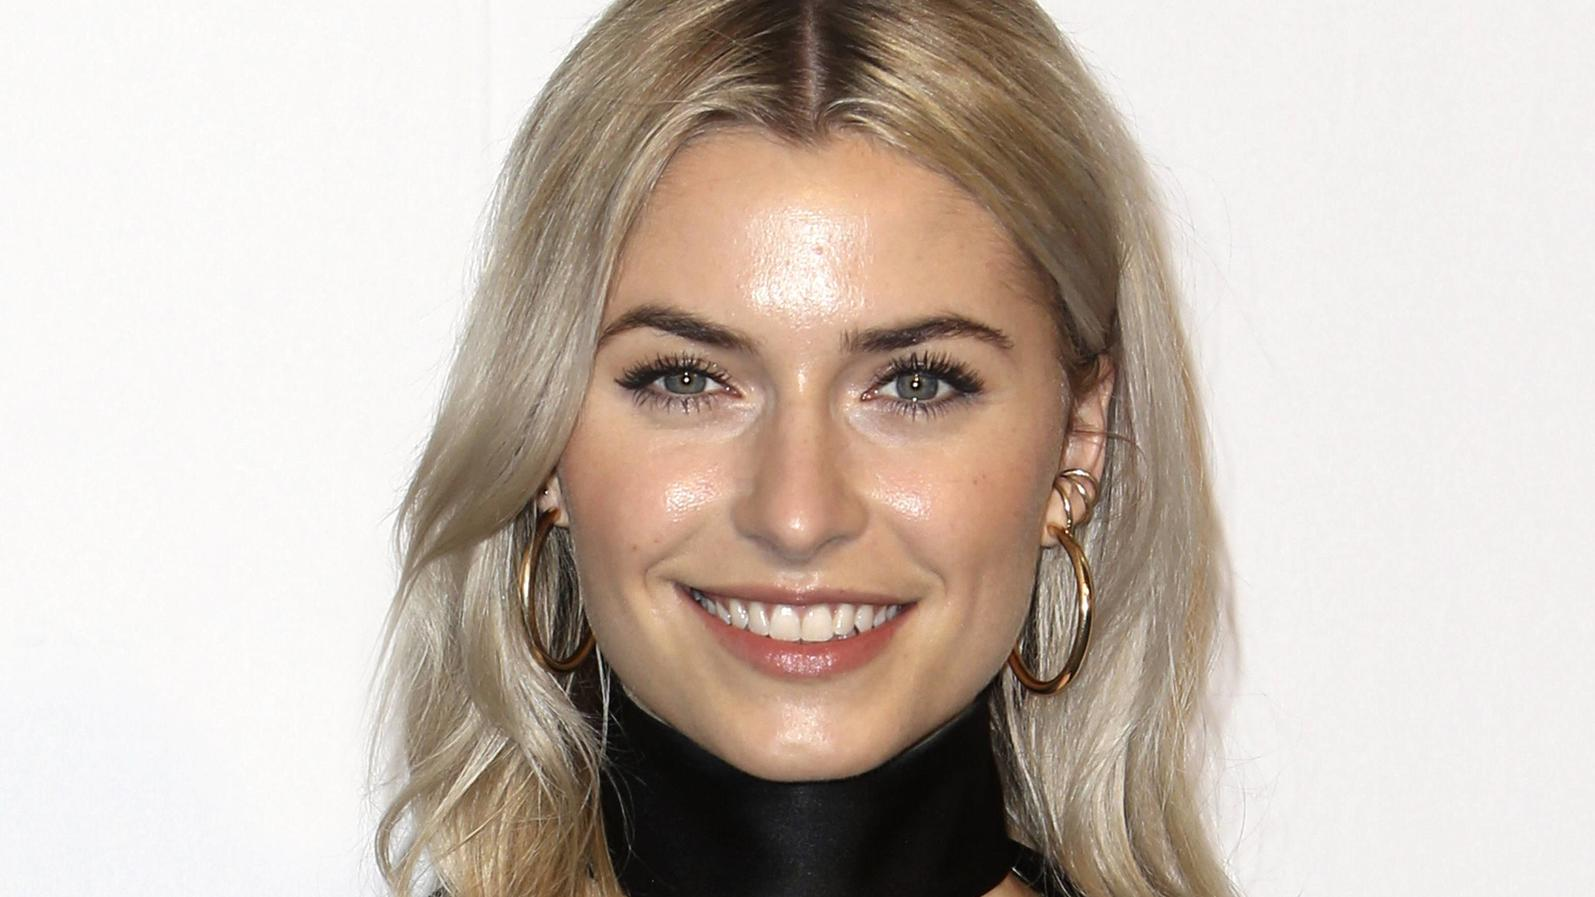 Lena Gercke And Dustin Schone Are A Couple